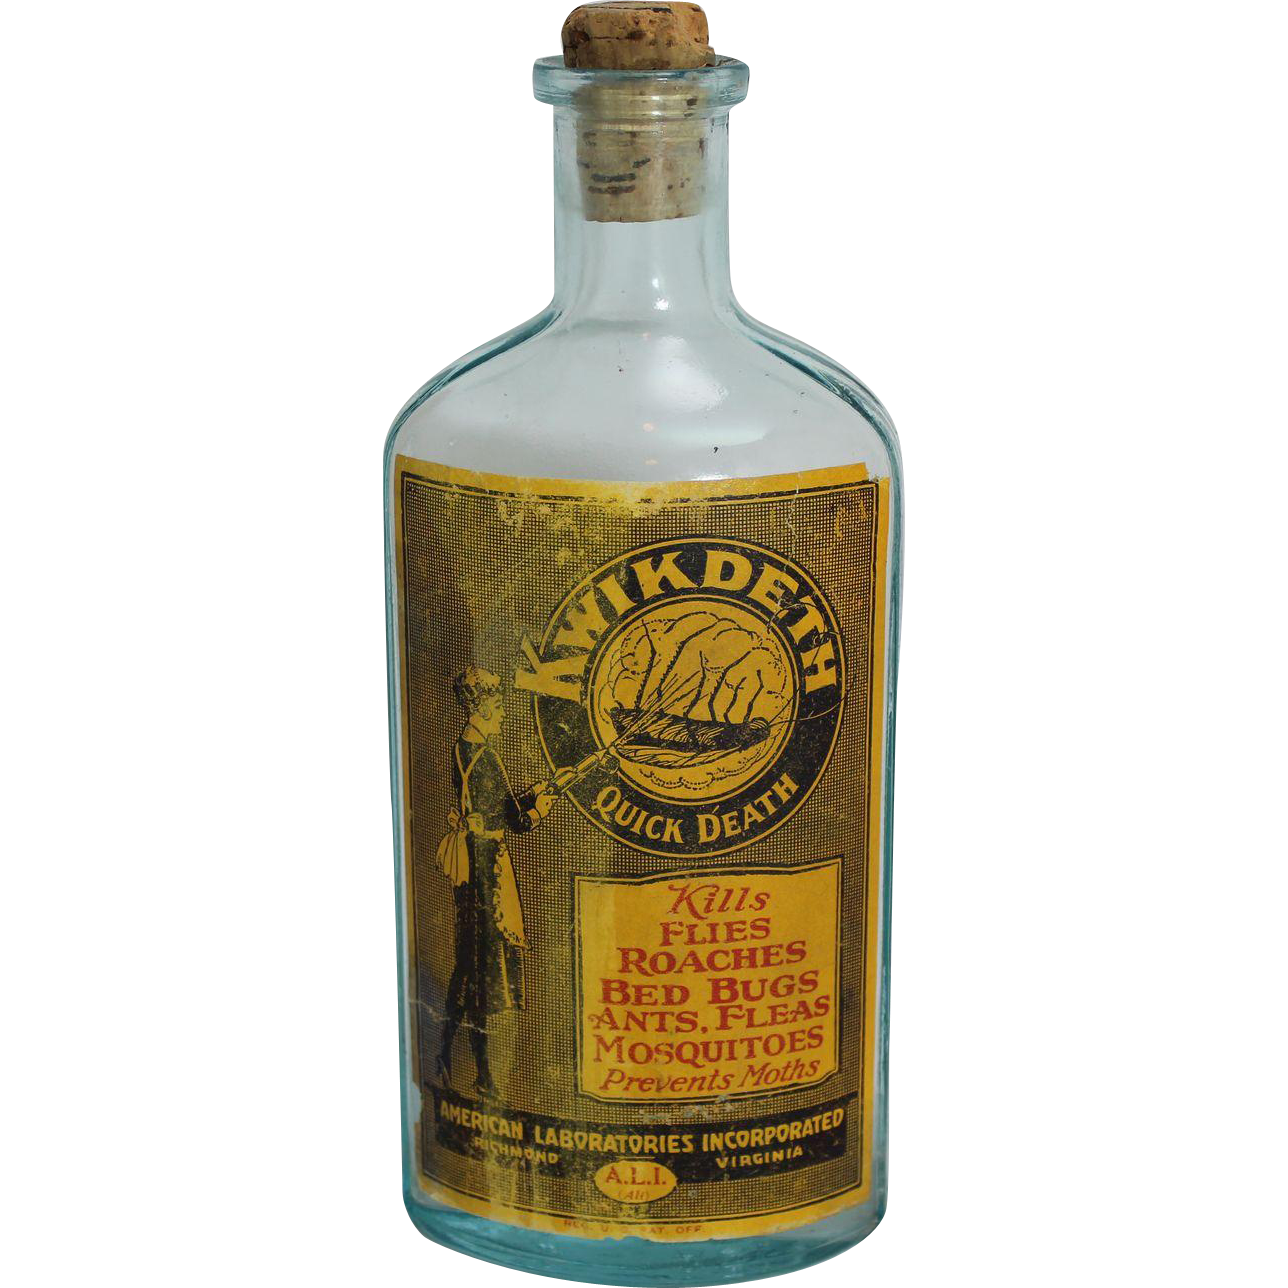 Vintage kwik deth bug. Poison bottle png